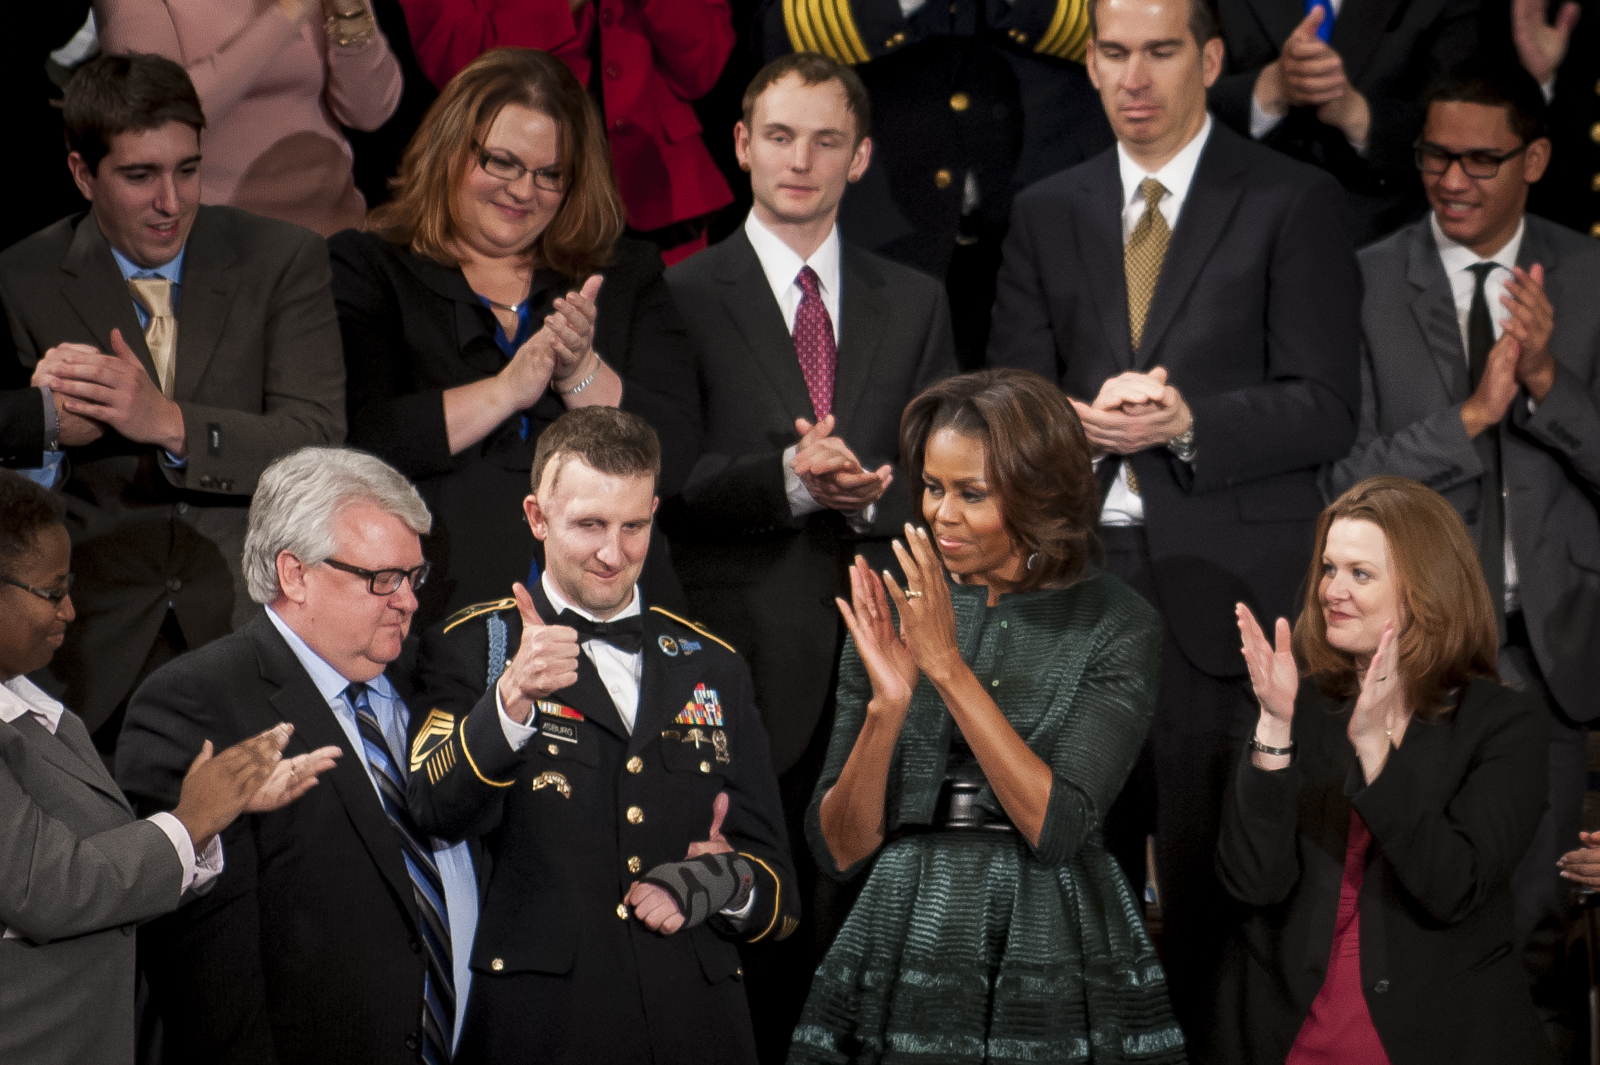 US Army Ranger Sergeant First Class Cory Remsburg gives a thumbs up in acknowledgement of the standing ovation by First Lady Michelle Obama and the entire Congress as U.S. President Barack Obama tells his story in the State of the Union address to a joint session of Congress at the Capitol in Washington, D.C., U.S., on Tuesday, Jan. 28, 2014. Remsburg was wounded by a roadside bomb in Kandahar, Afghanistan on his 10th deployment that left him in a coma for three months, partially paralyzed and brain-damaged. Photographer: Pete Marovich/Bloomberg